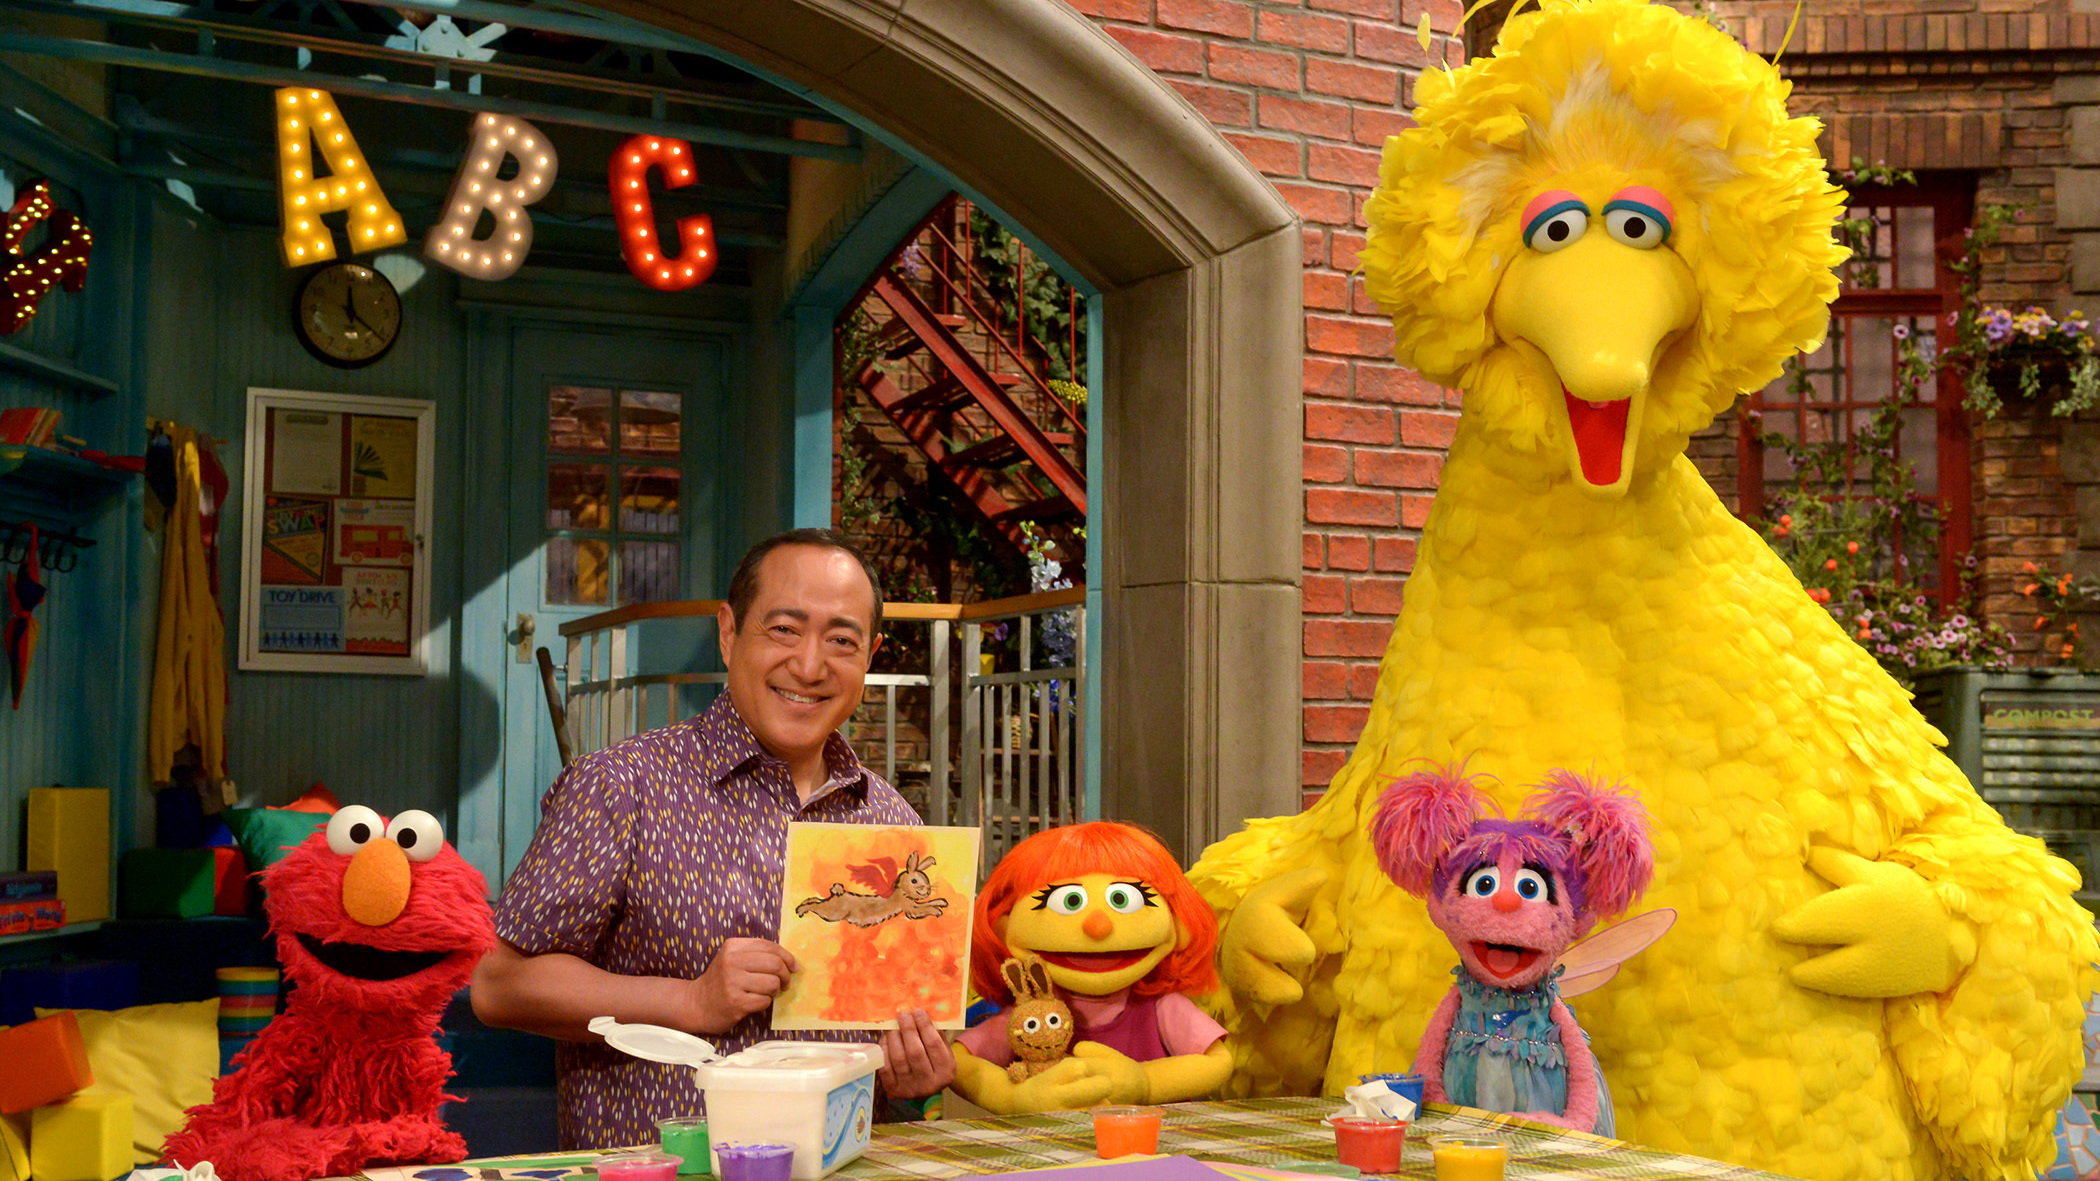 Image for Julia, A Muppet With Autism, Joins The Cast Of 'Sesame Street' Article